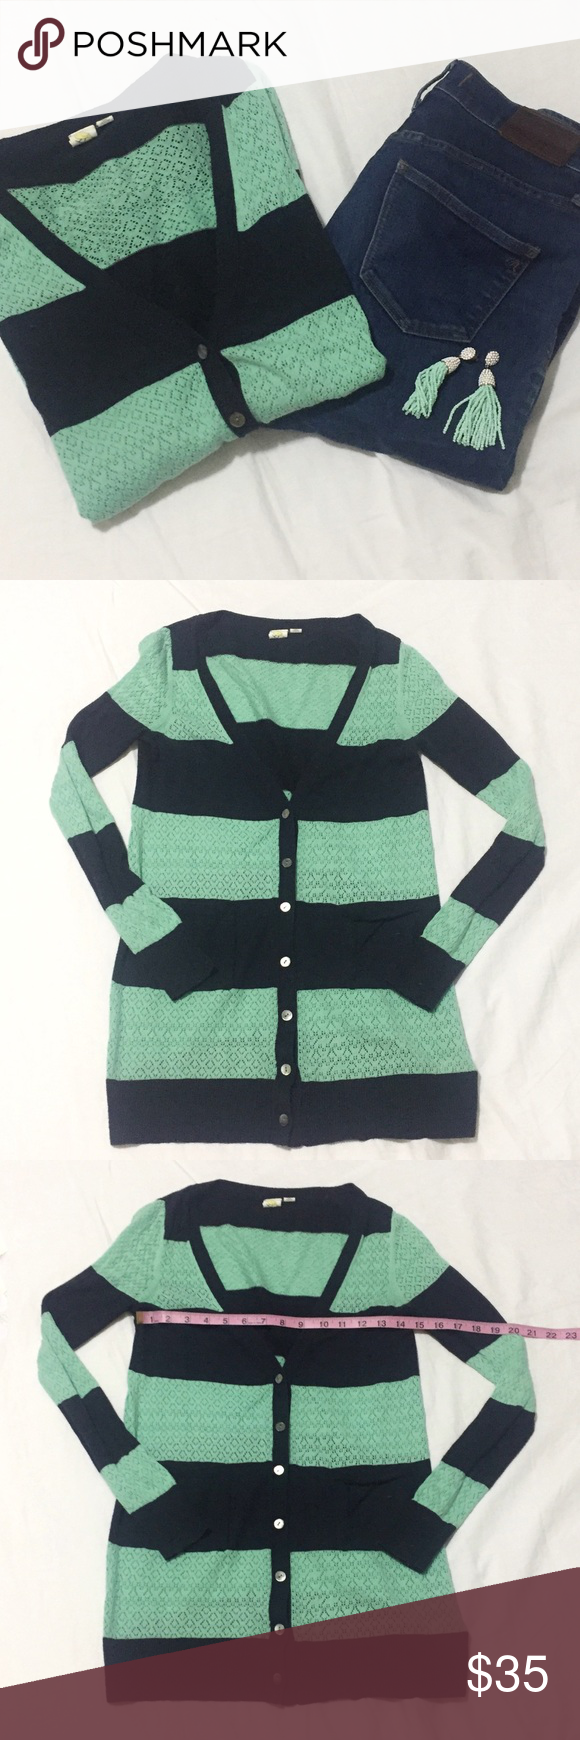 Anthropologie   Mint/Blue Striped Cardigan   XS Anthropologie Yellow Bird   Mint/Blue Striped Cardigan   Size: XS   Great Condition   No Wear or Damage   Pet/Smoke Free Home   True to Size   Cotton Blend   See Photos For Measurements Anthropologie Sweaters Cardigans